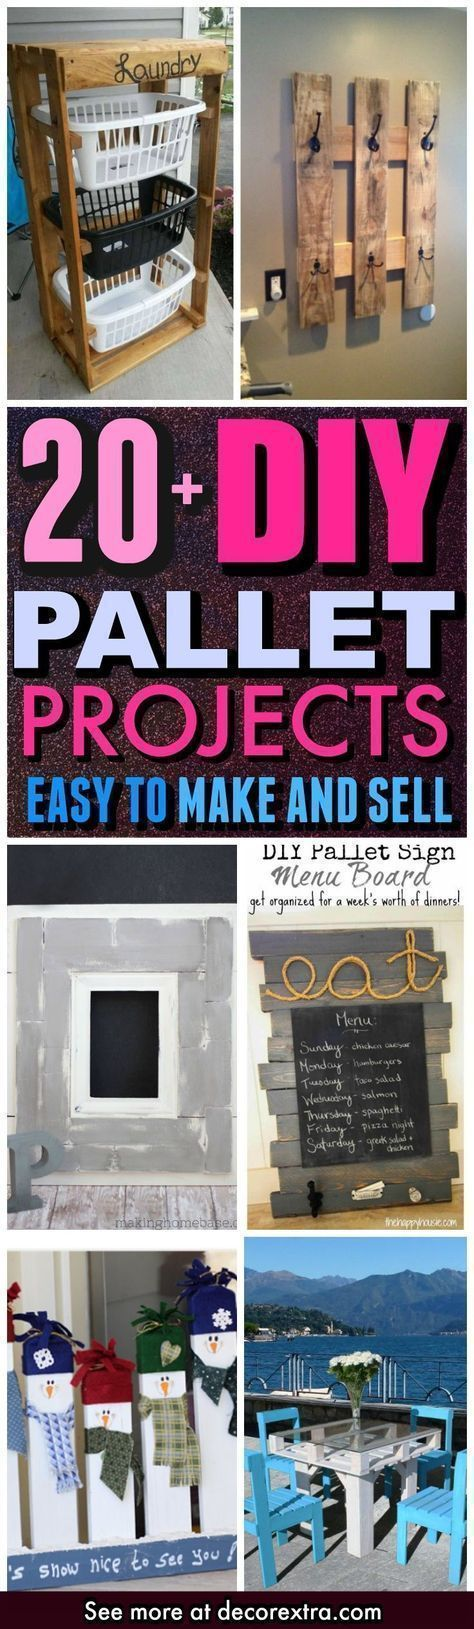 DIY Pallet Projects, Ideas and Crafts To Make and Sell, Cheap DIY Ideas, Craft Projects You Can Sell On Etsy, Wood Pallet DIY Made Easy With Step by Step Tutorials - Easy and Quick DIY Projects and Crafts http://decorextra.com/diy-pallet-projects-easy-to-make-and-sell/ #sellhousebyowner #craftstomake #palletprojects #craftstomakeandsell #woodcraftsideas